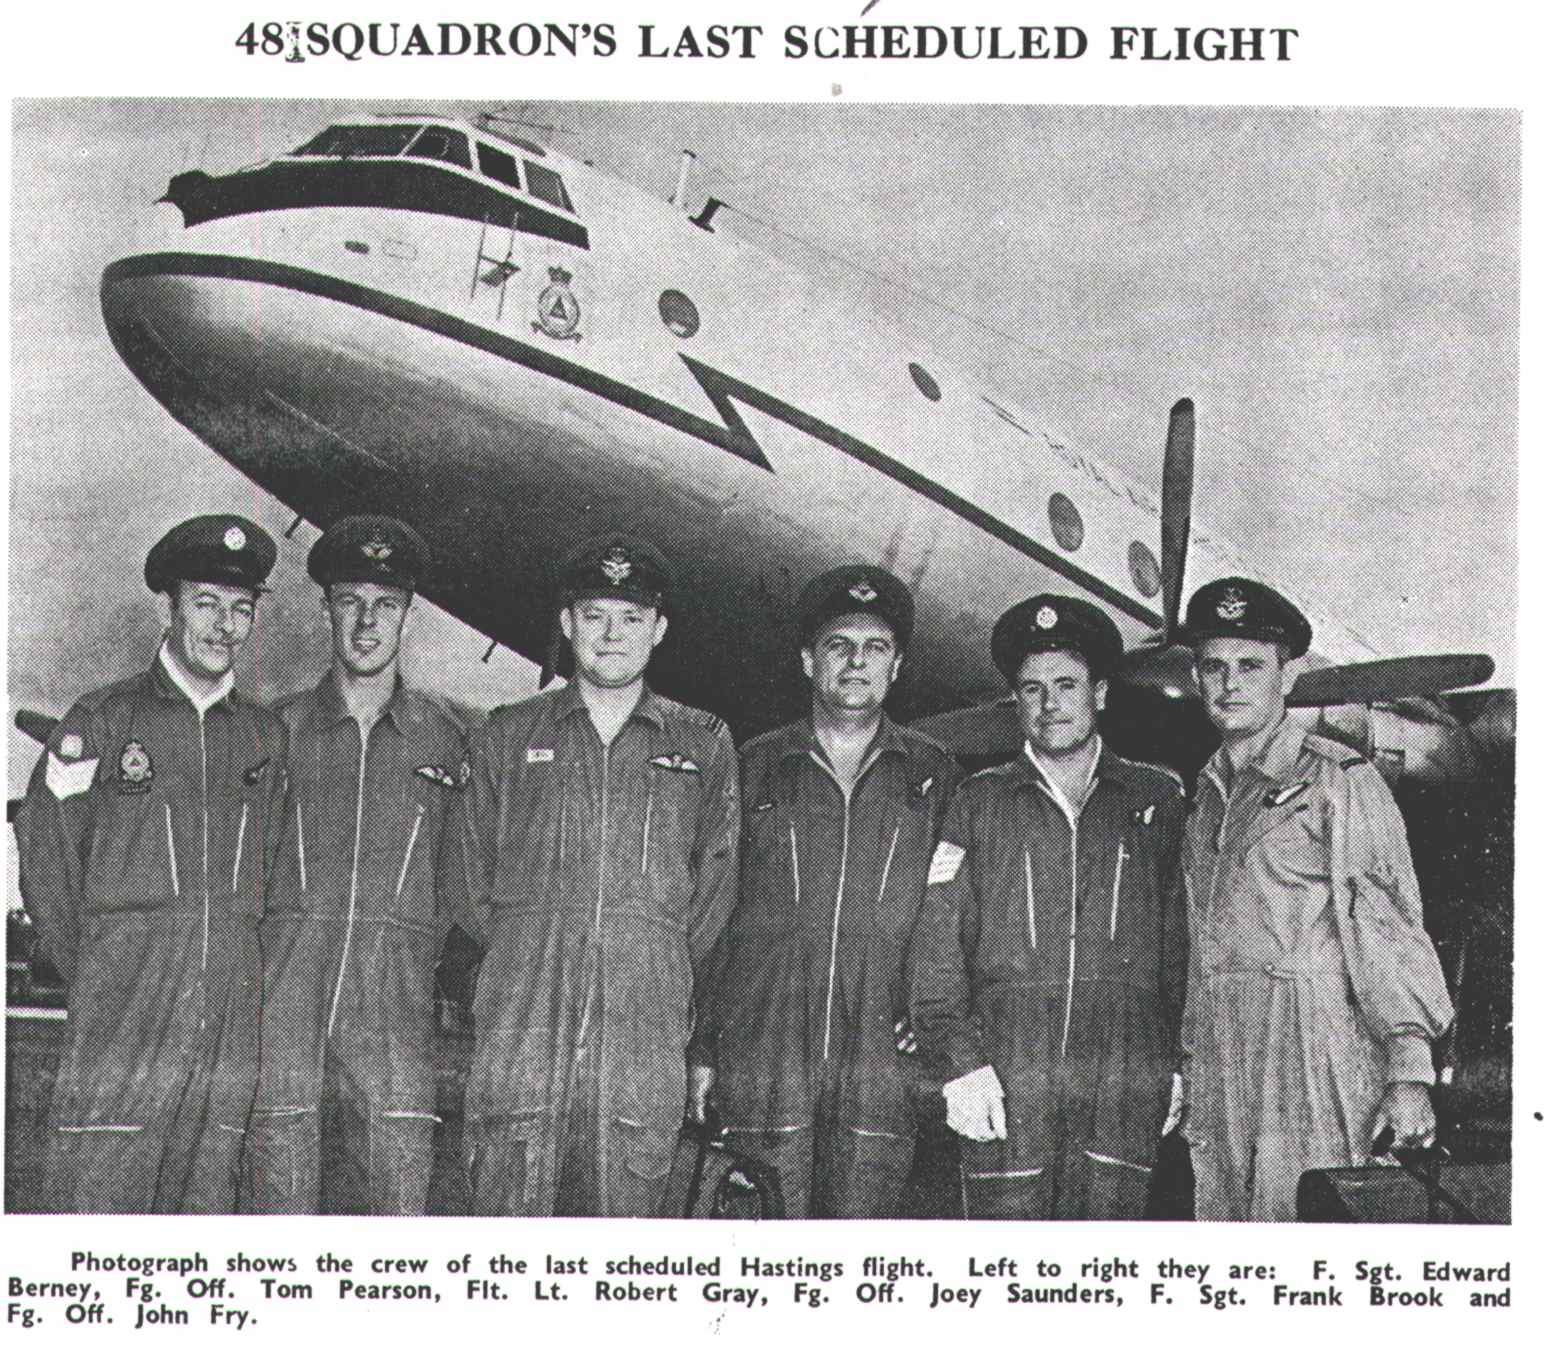 The Disbandment of 48 Squadron for Re-Equipping, April 1967